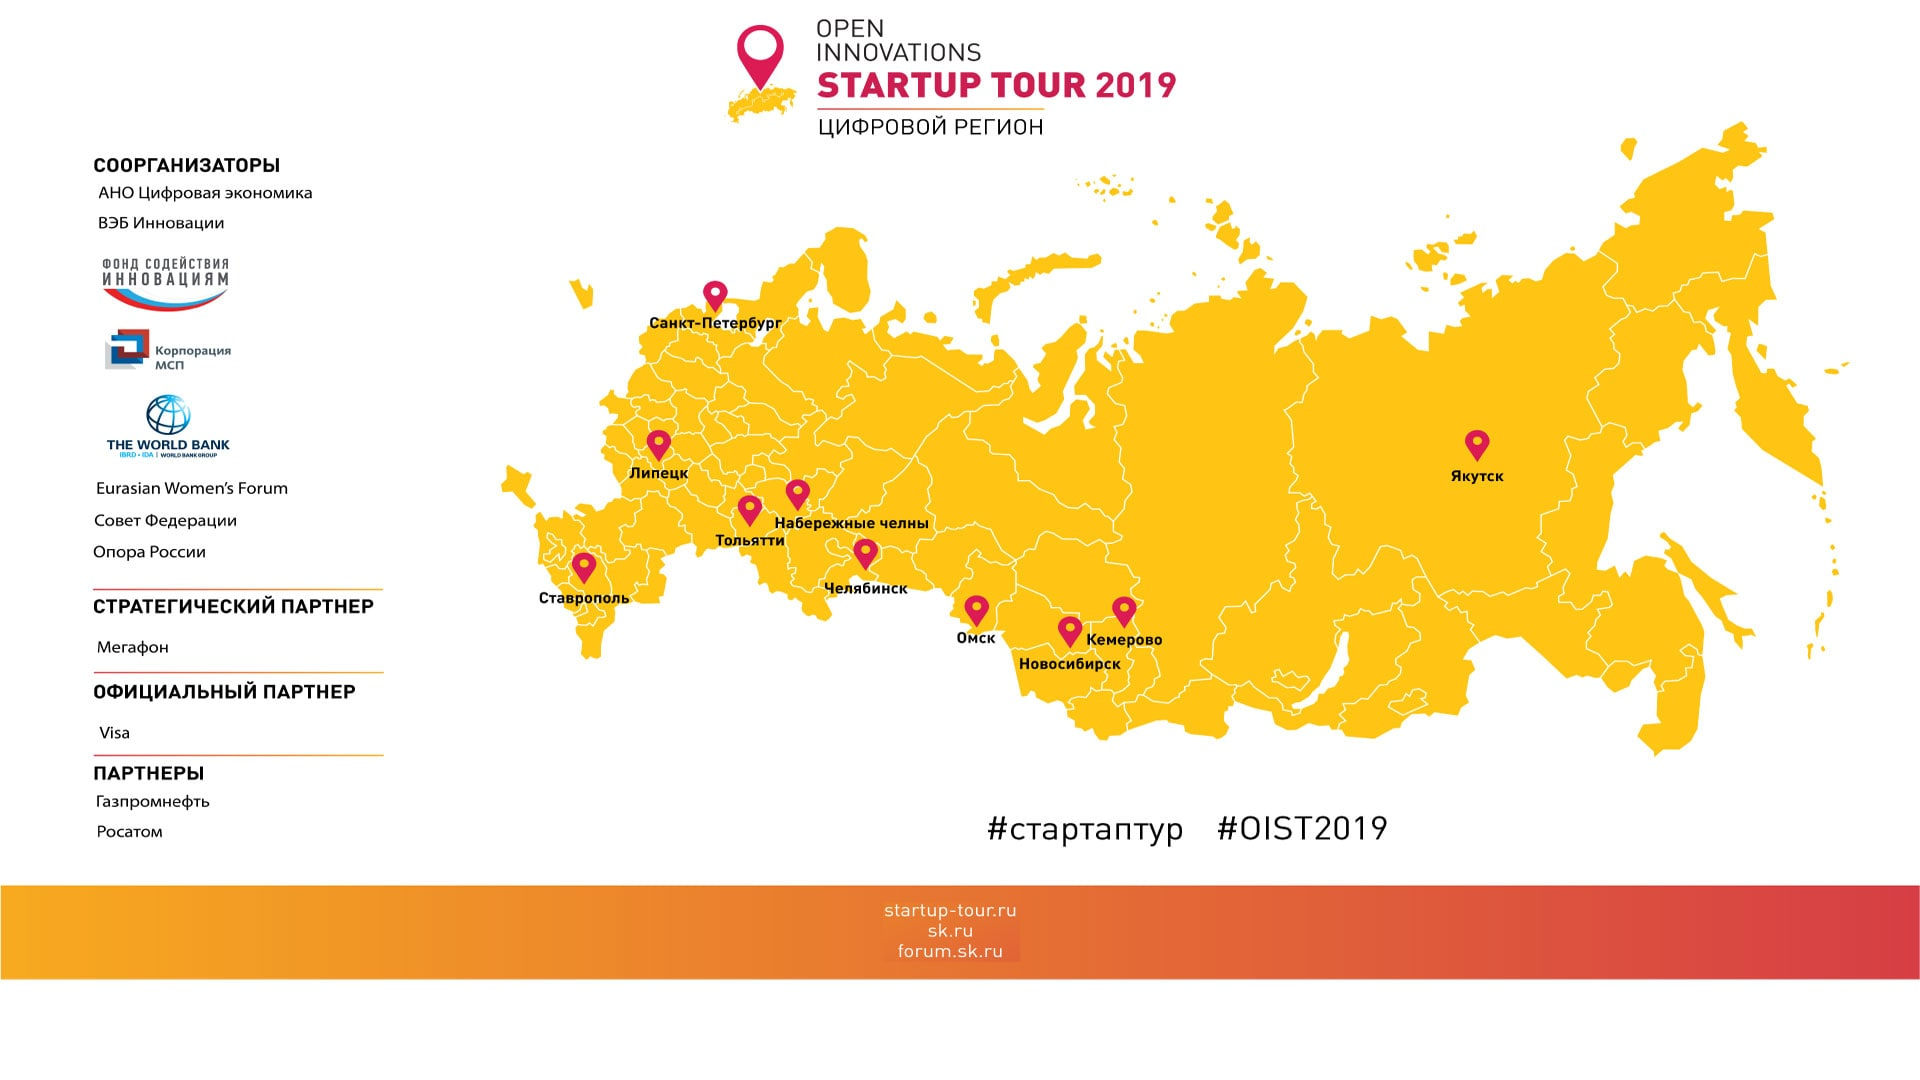 Open Innovations Startup Tour-2019